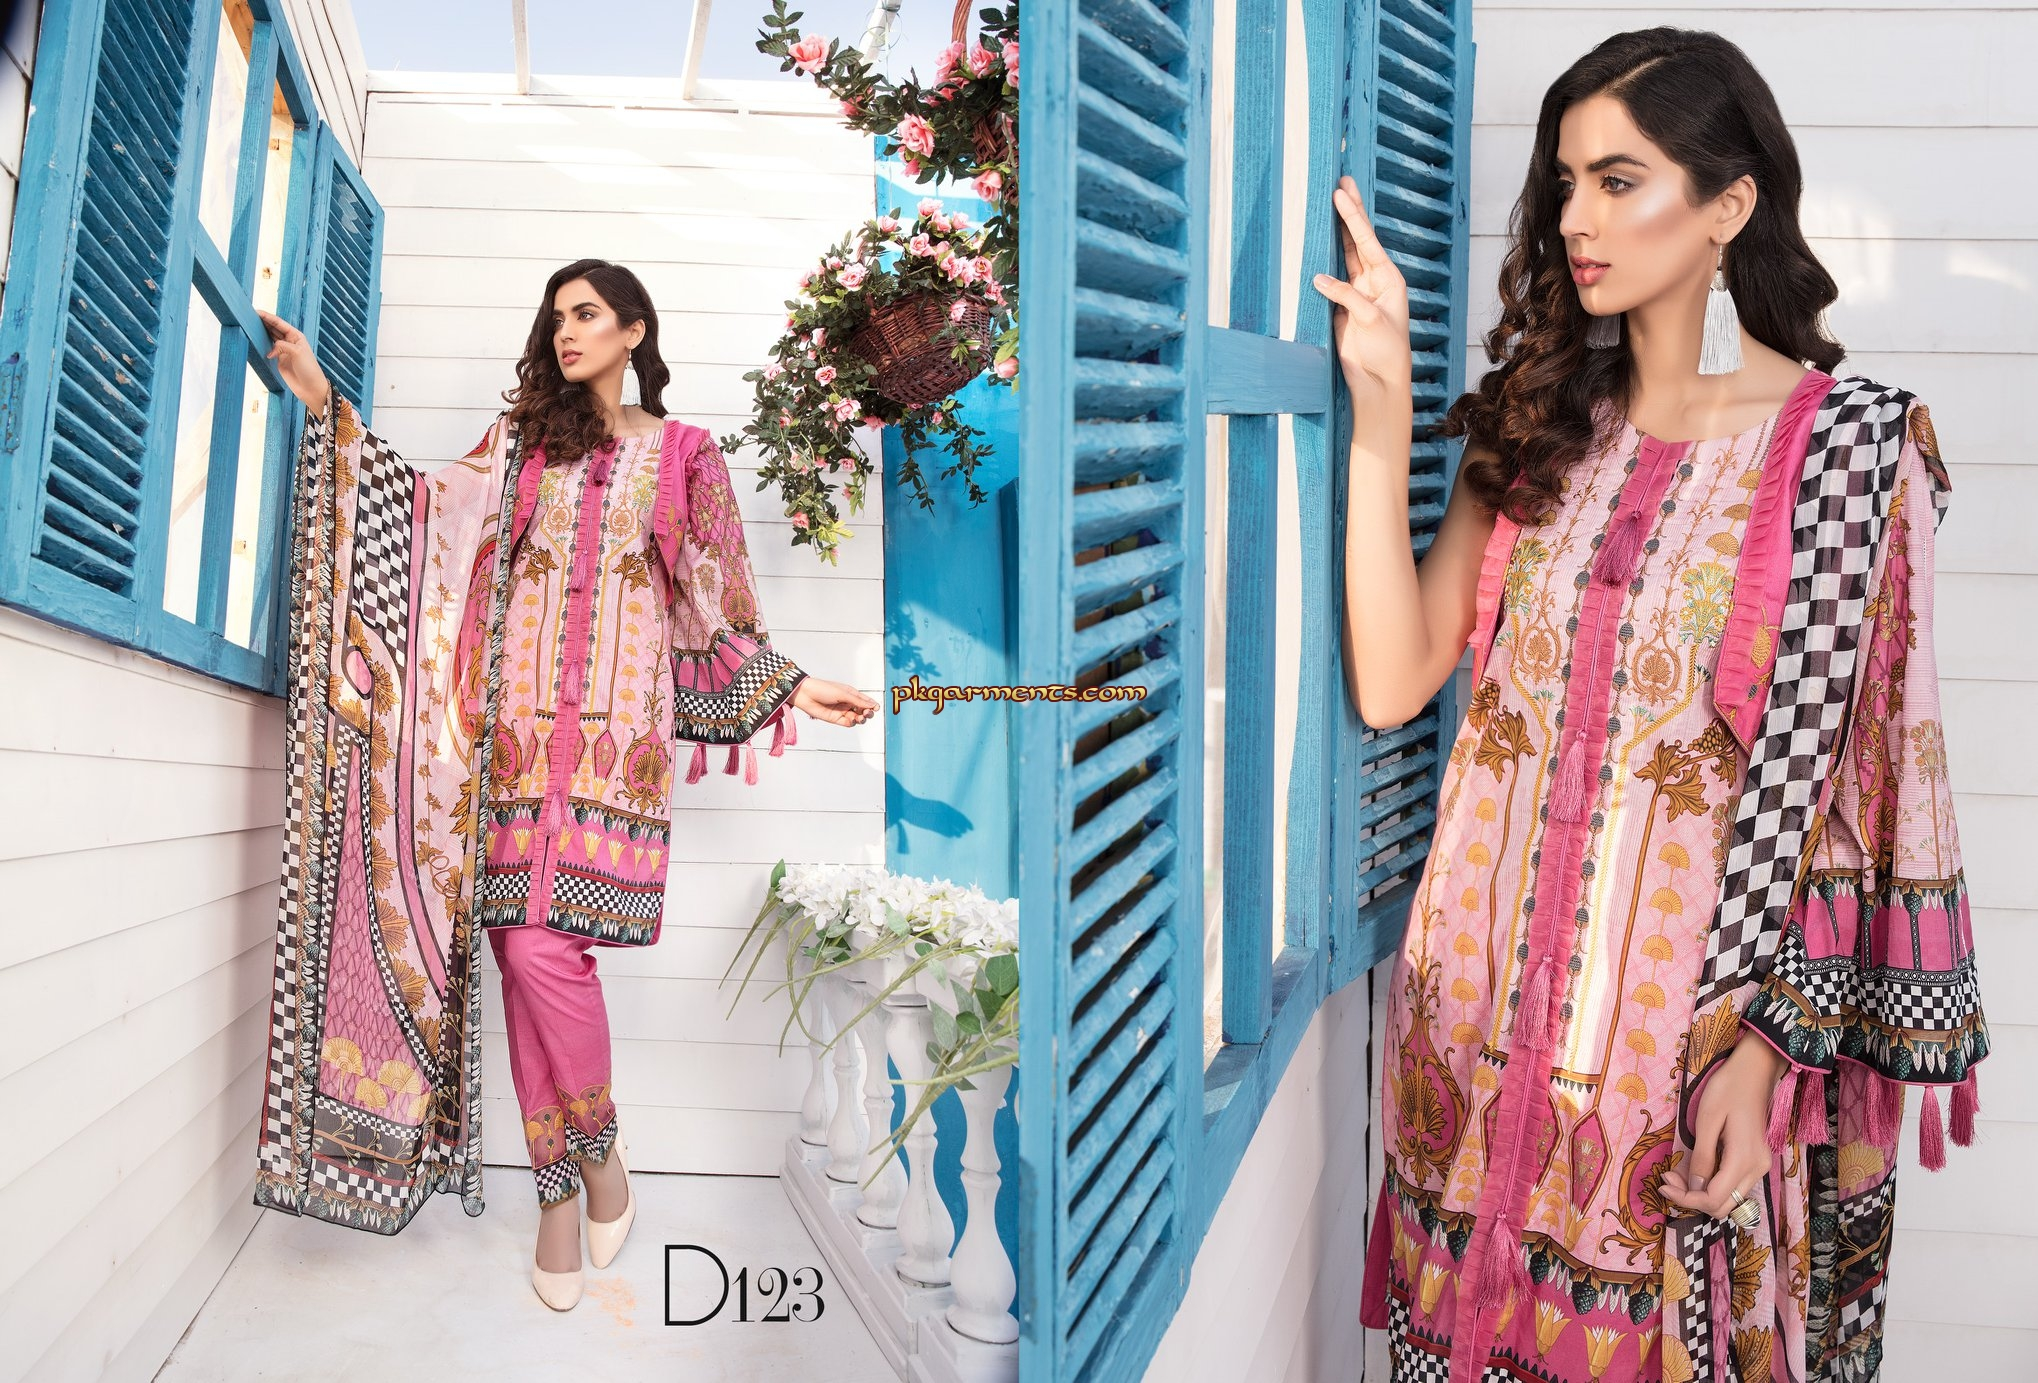 521882f073 Sanoor By Noor Fatima Spring Summer 2019 | Pakistani Clothes ...